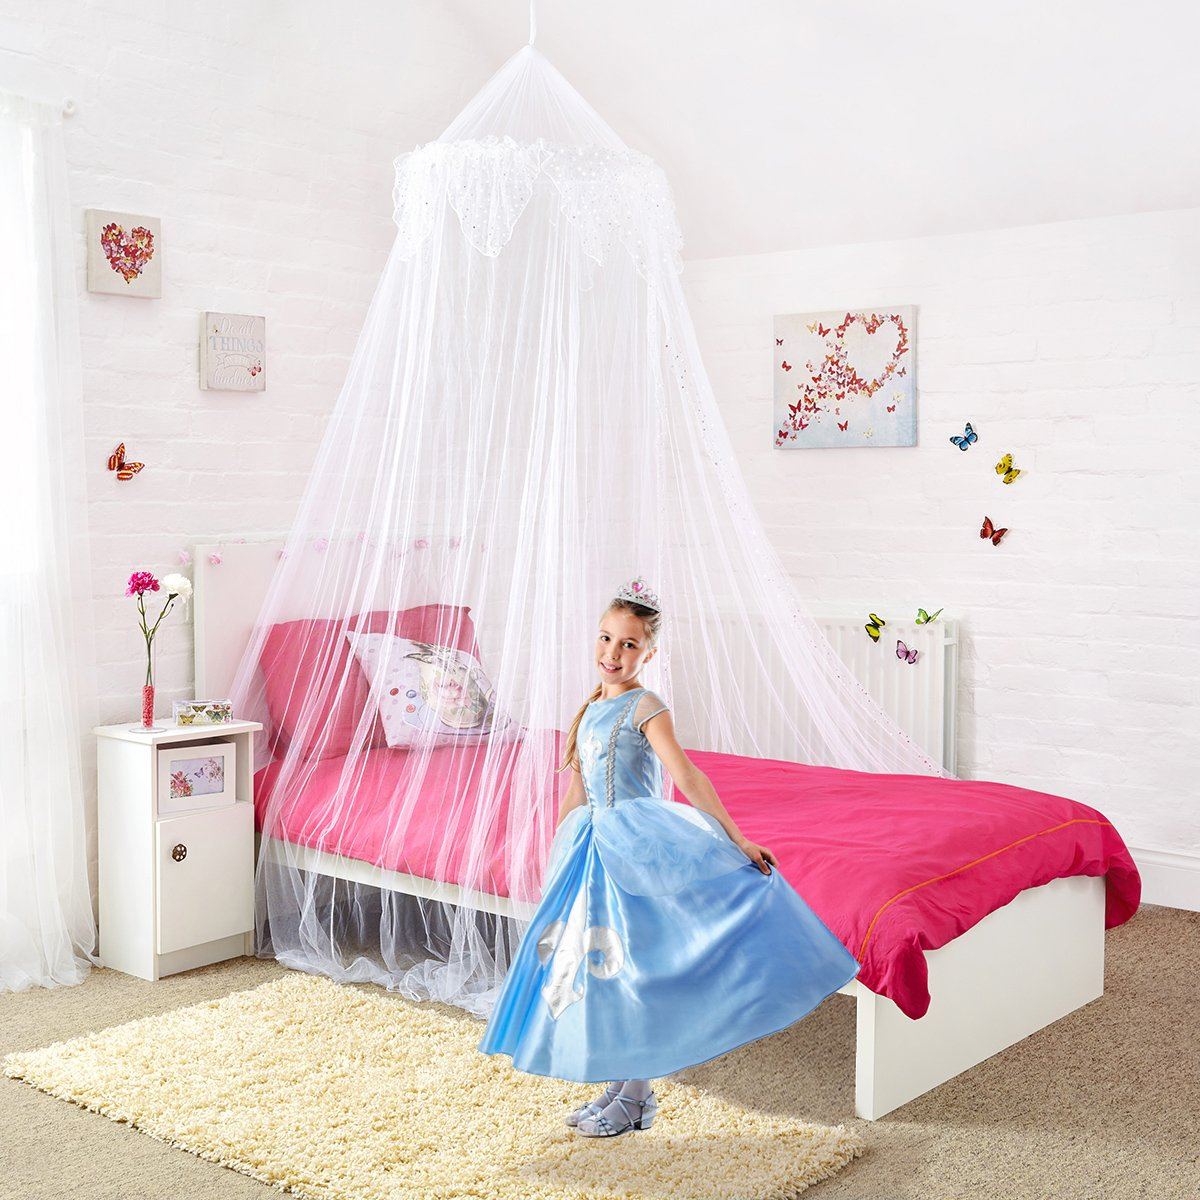 Amazon.com: Princess Bed Canopy - Beautiful Silver Sequined Childrens Bed  Canopy in White Quick and Easy To Hang Bedroom Accessories: Home & Kitchen - Amazon.com: Princess Bed Canopy - Beautiful Silver Sequined